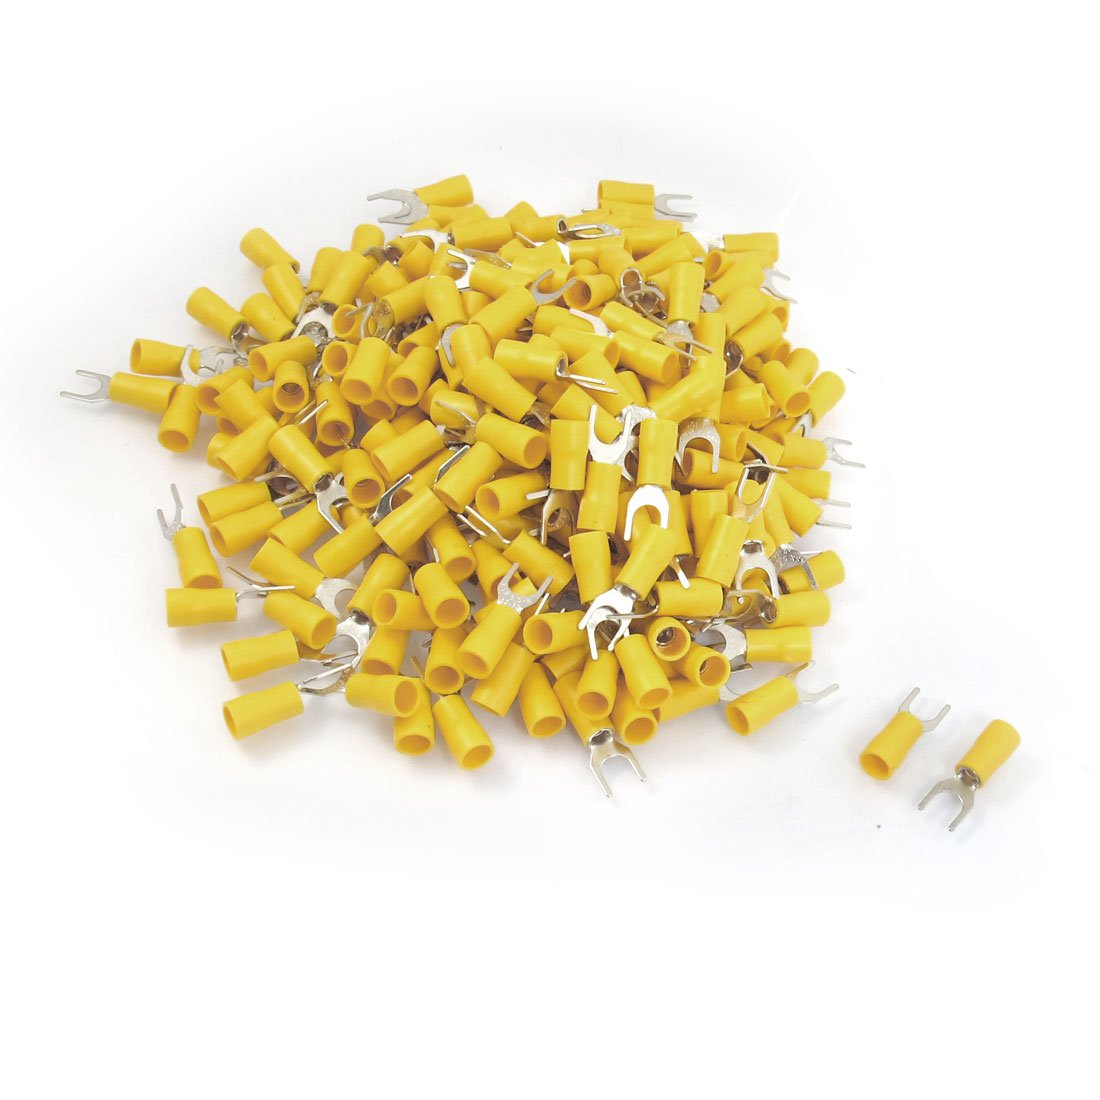 uxcell 12-10 AWG Yellow PVC Sleeve Insulating Fork Terminals Connector 500 Pcs